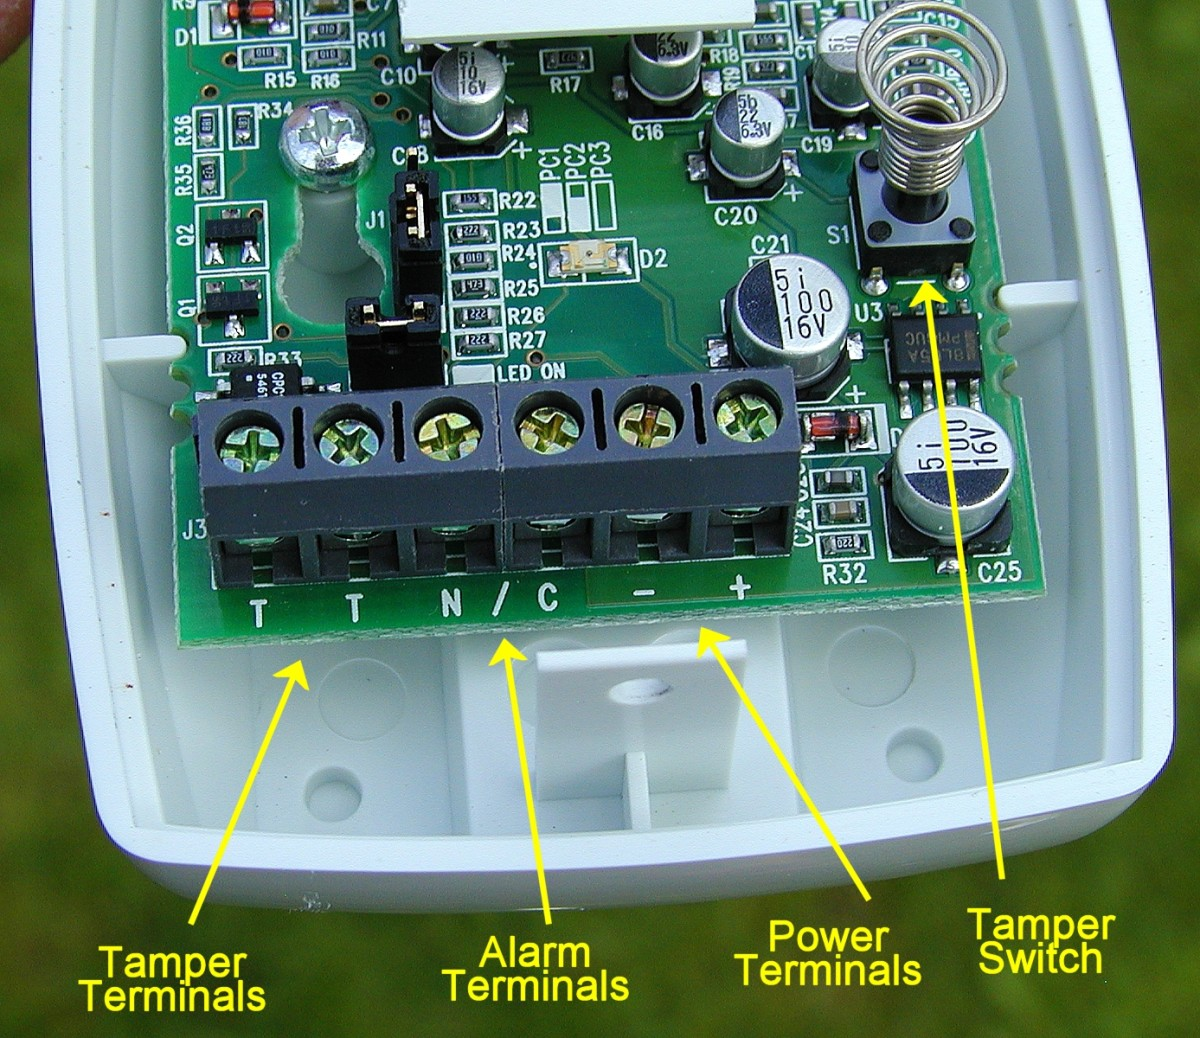 How Do I Fix My Security Alarm? — Top Tips | Dengarden Napco Alarm Wiring Diagram on